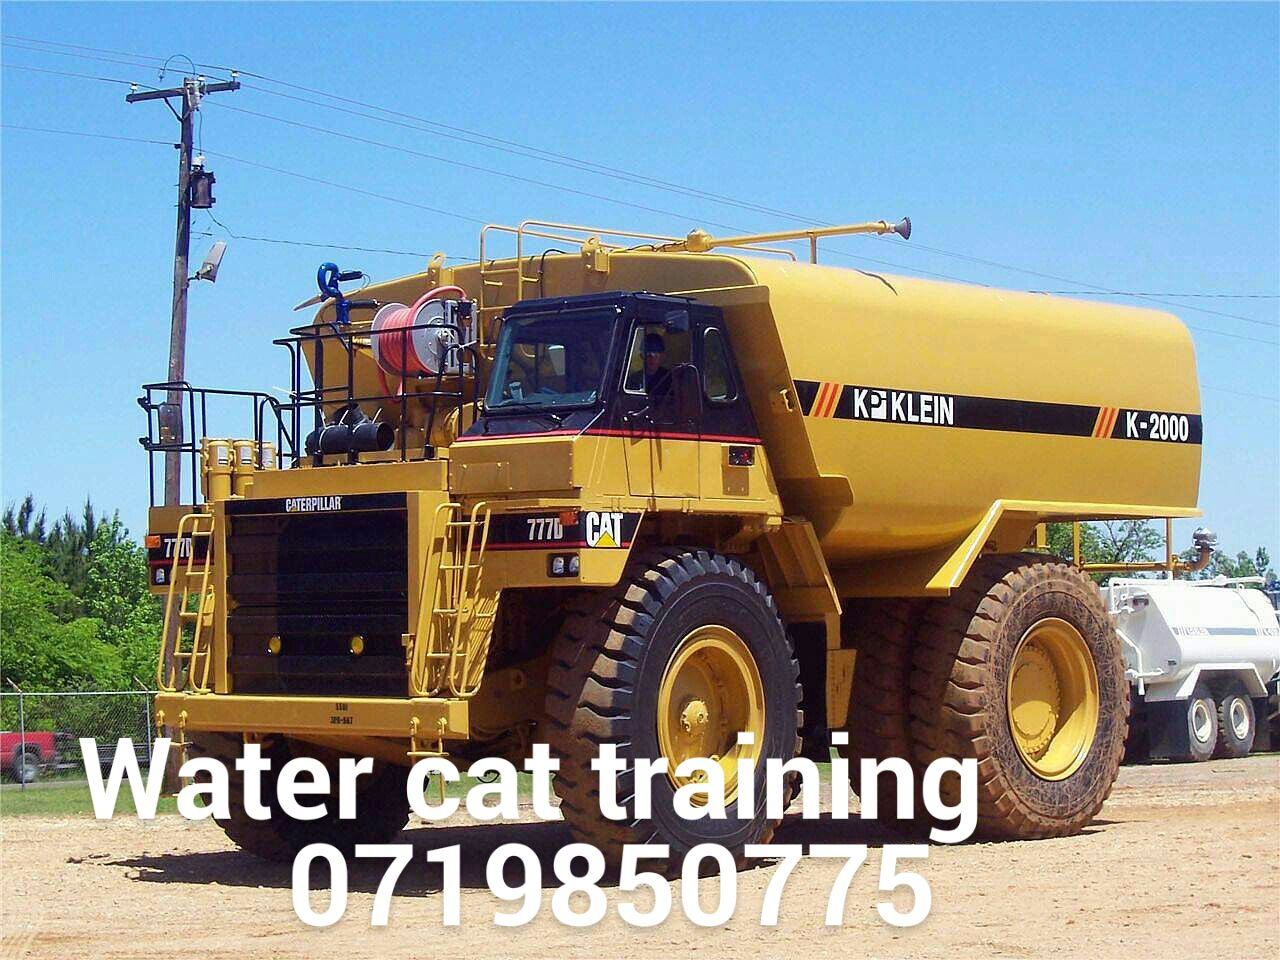 water cat course 777 dump truck training plumbing Boilermaker diesel mechanic classes 0733146833